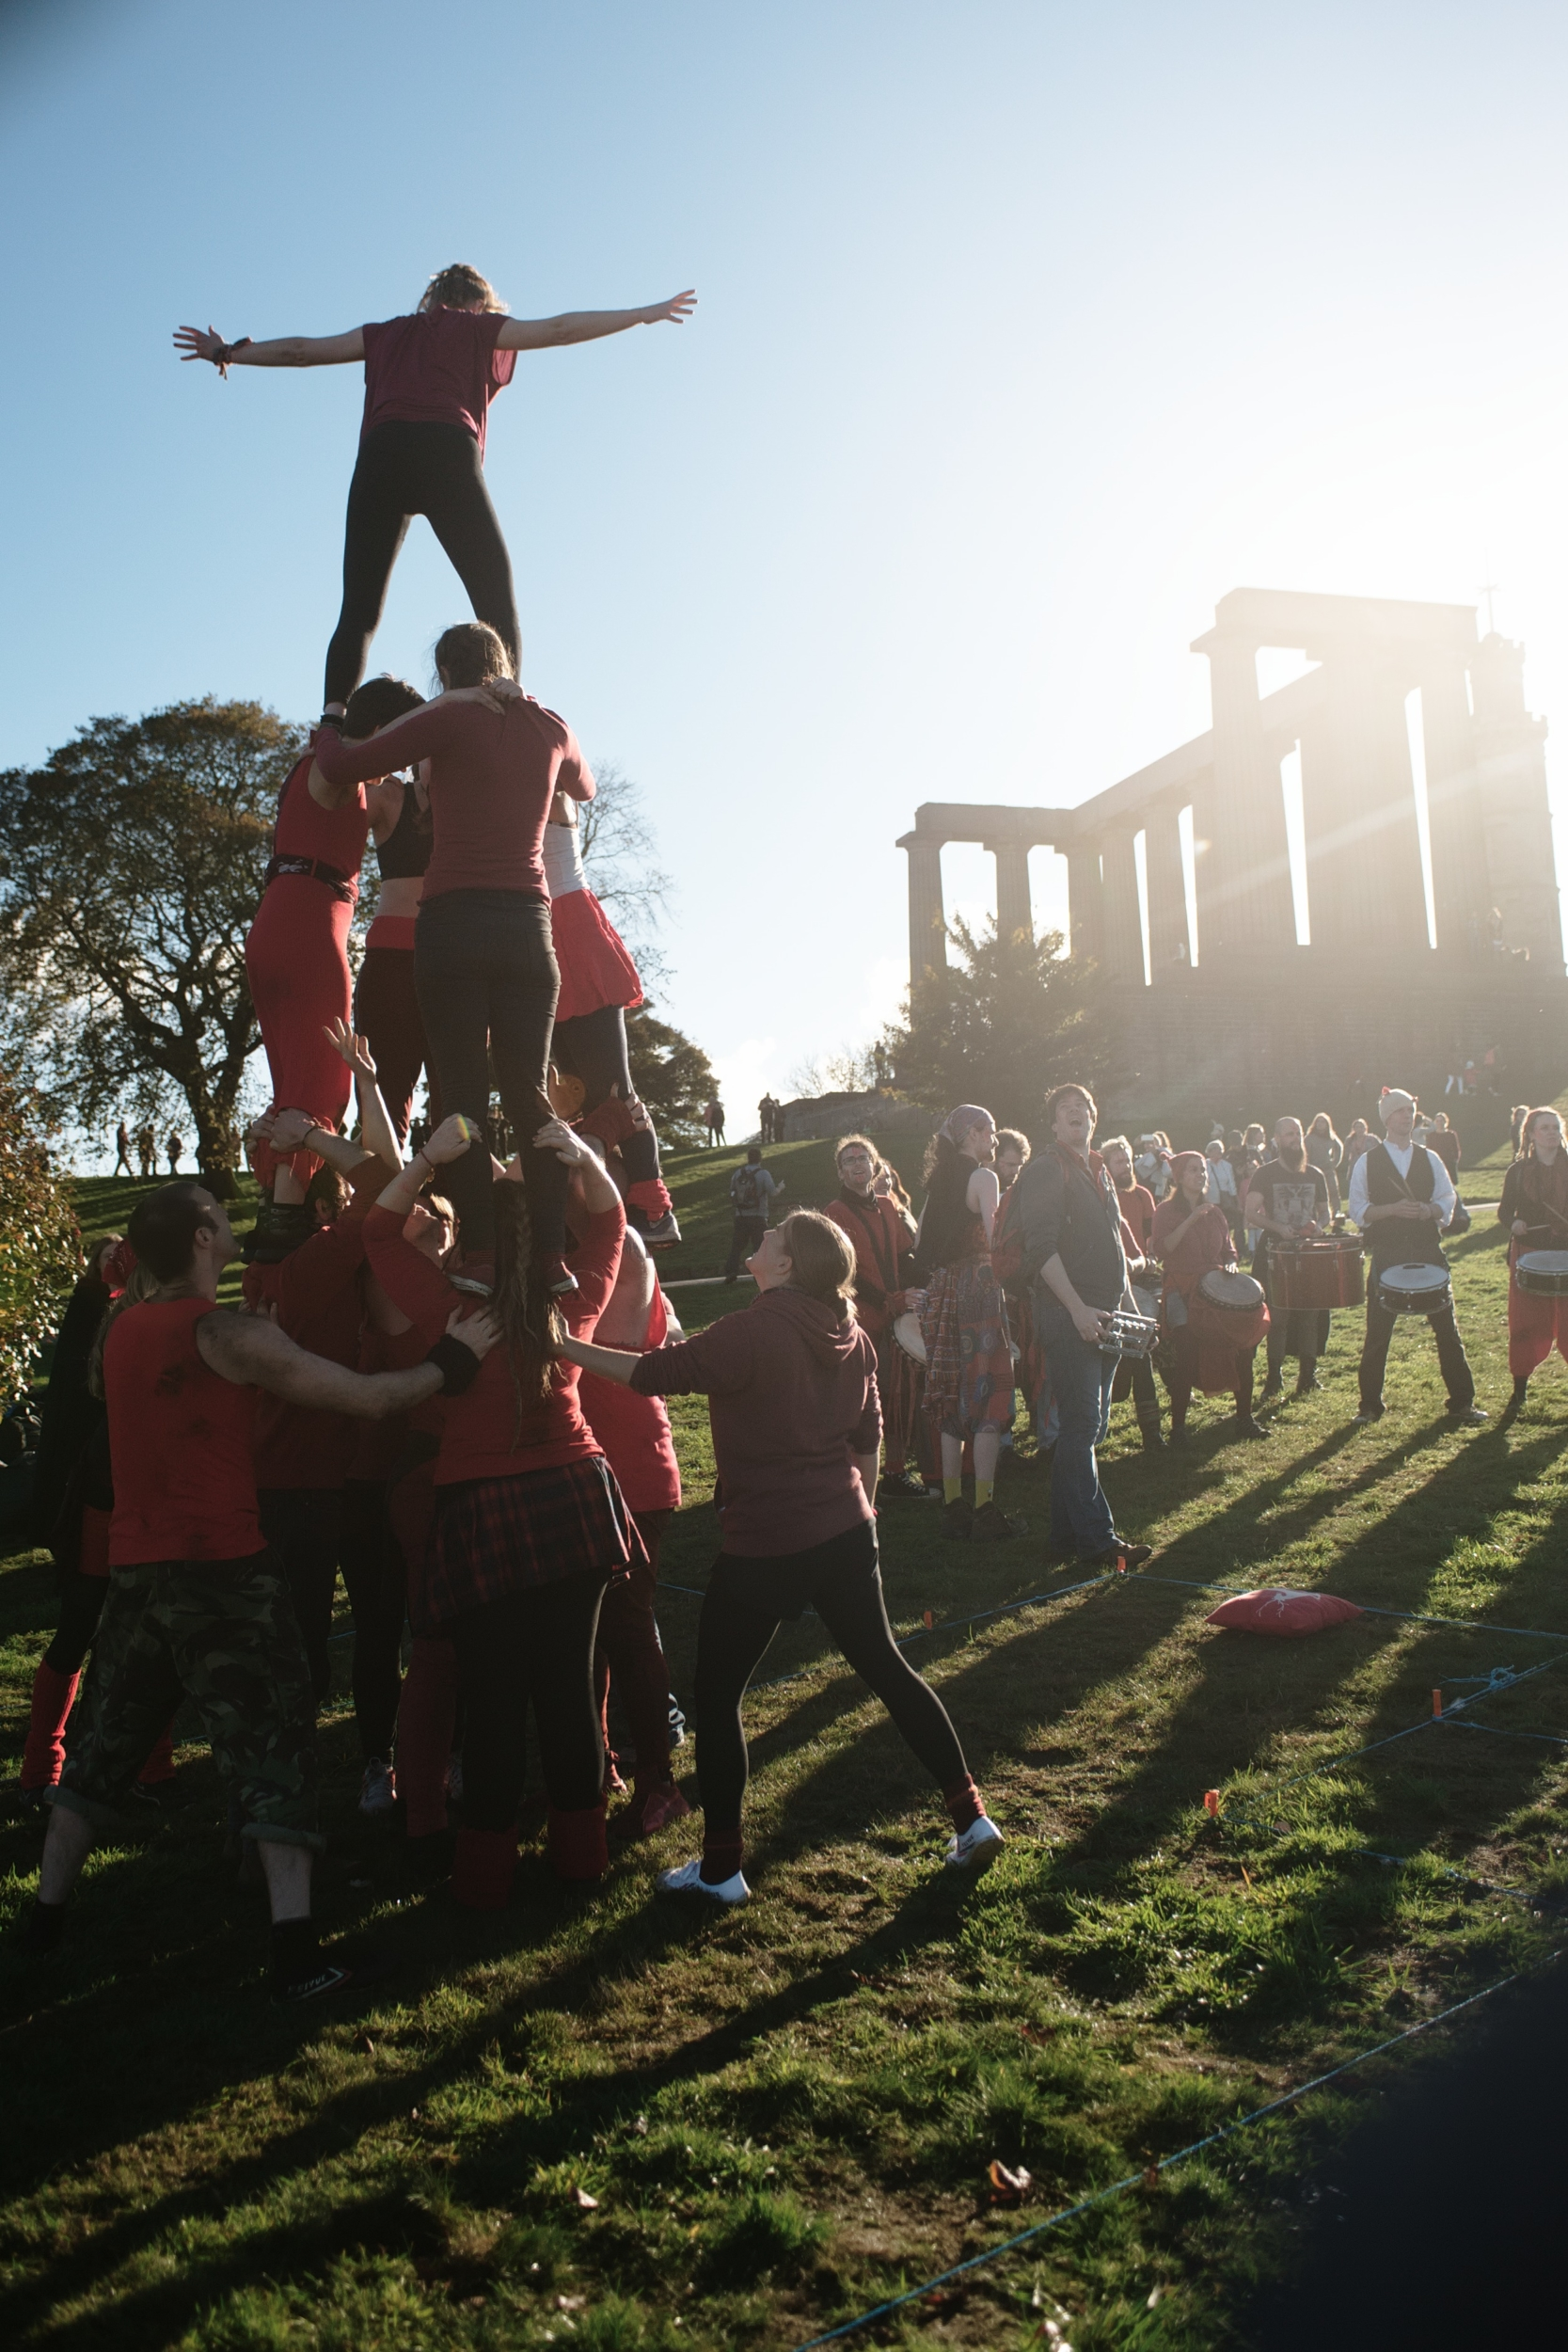 Beltane fire society acrobats perform on calton hill